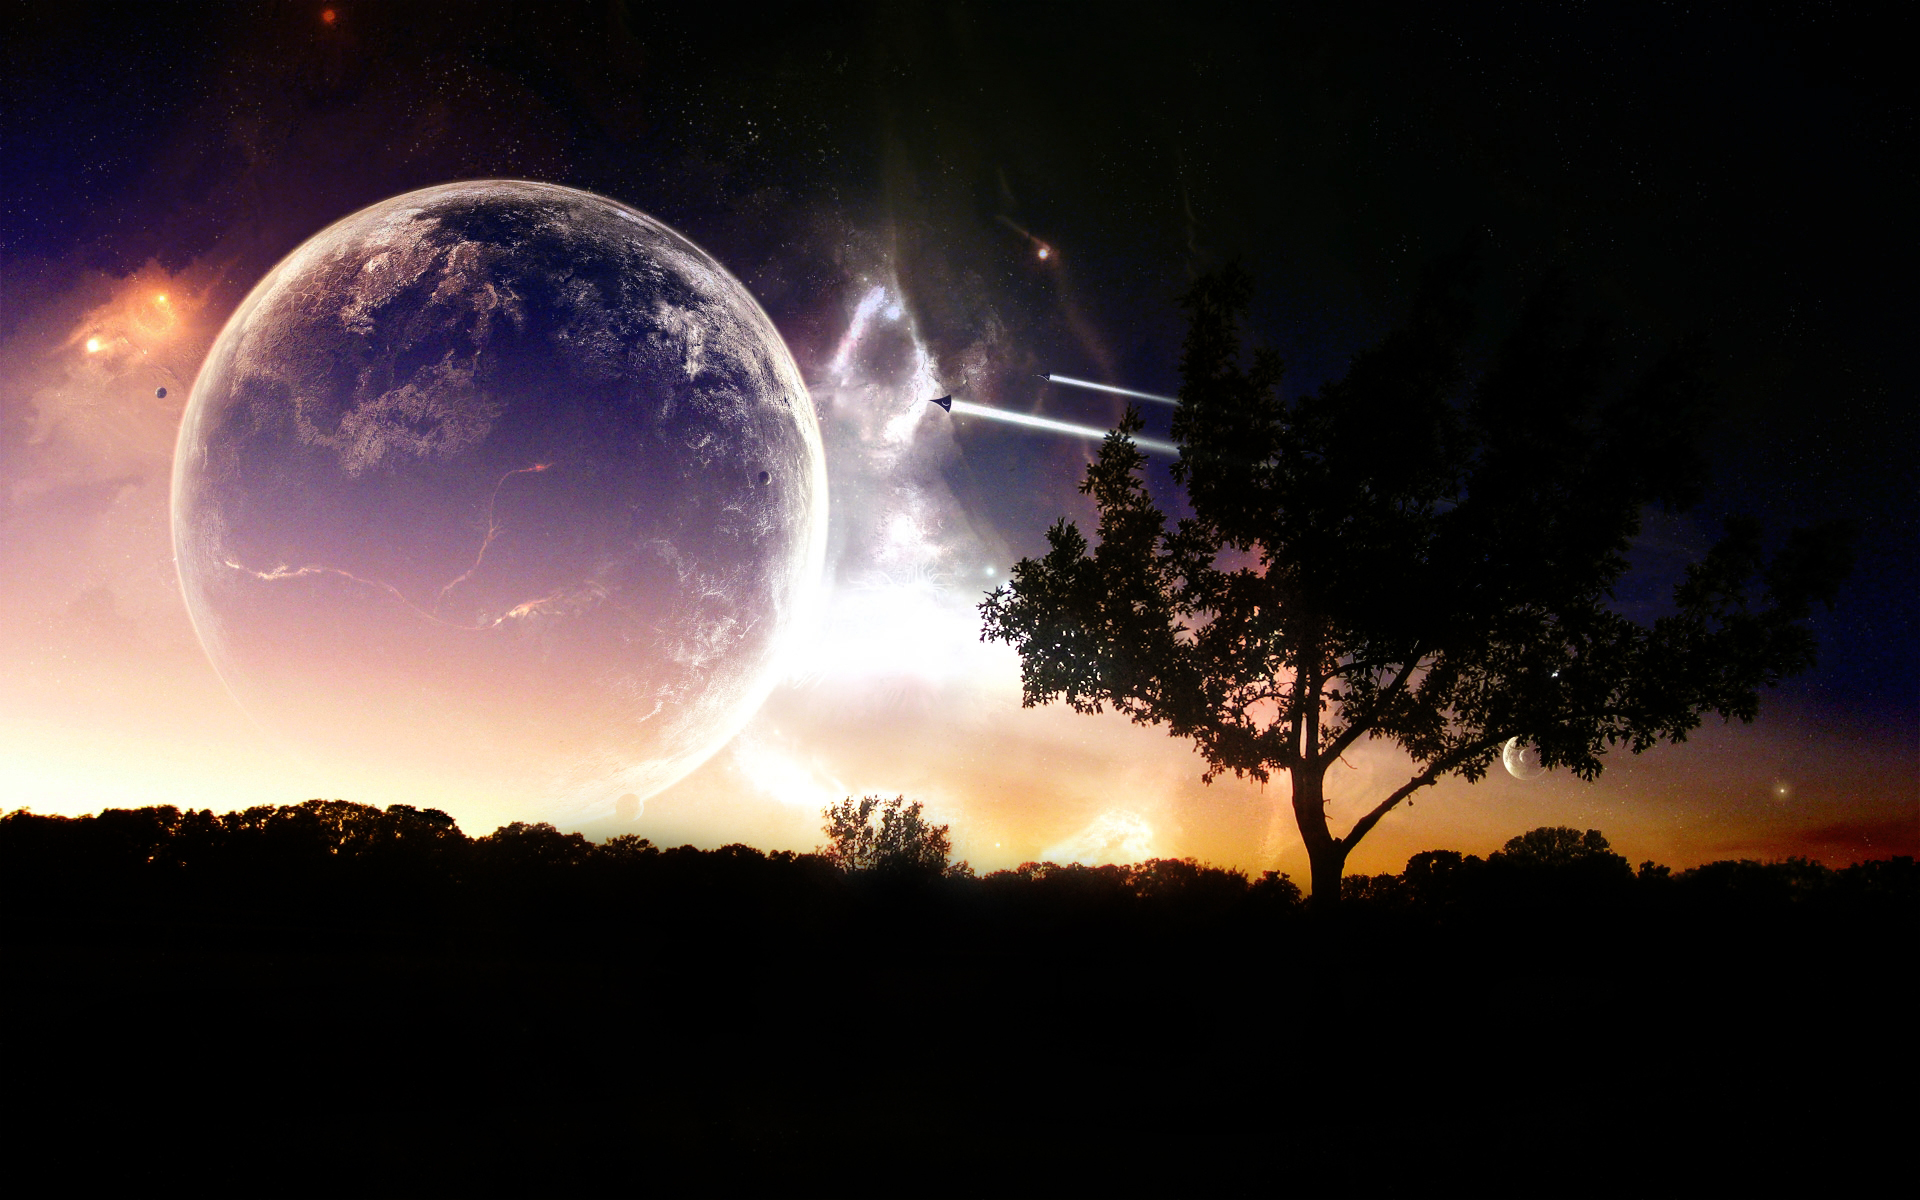 Sci Fi - Planet Rise  - Earth - Tree - Planets - Spaceships - Stars - Atmosphere Wallpaper